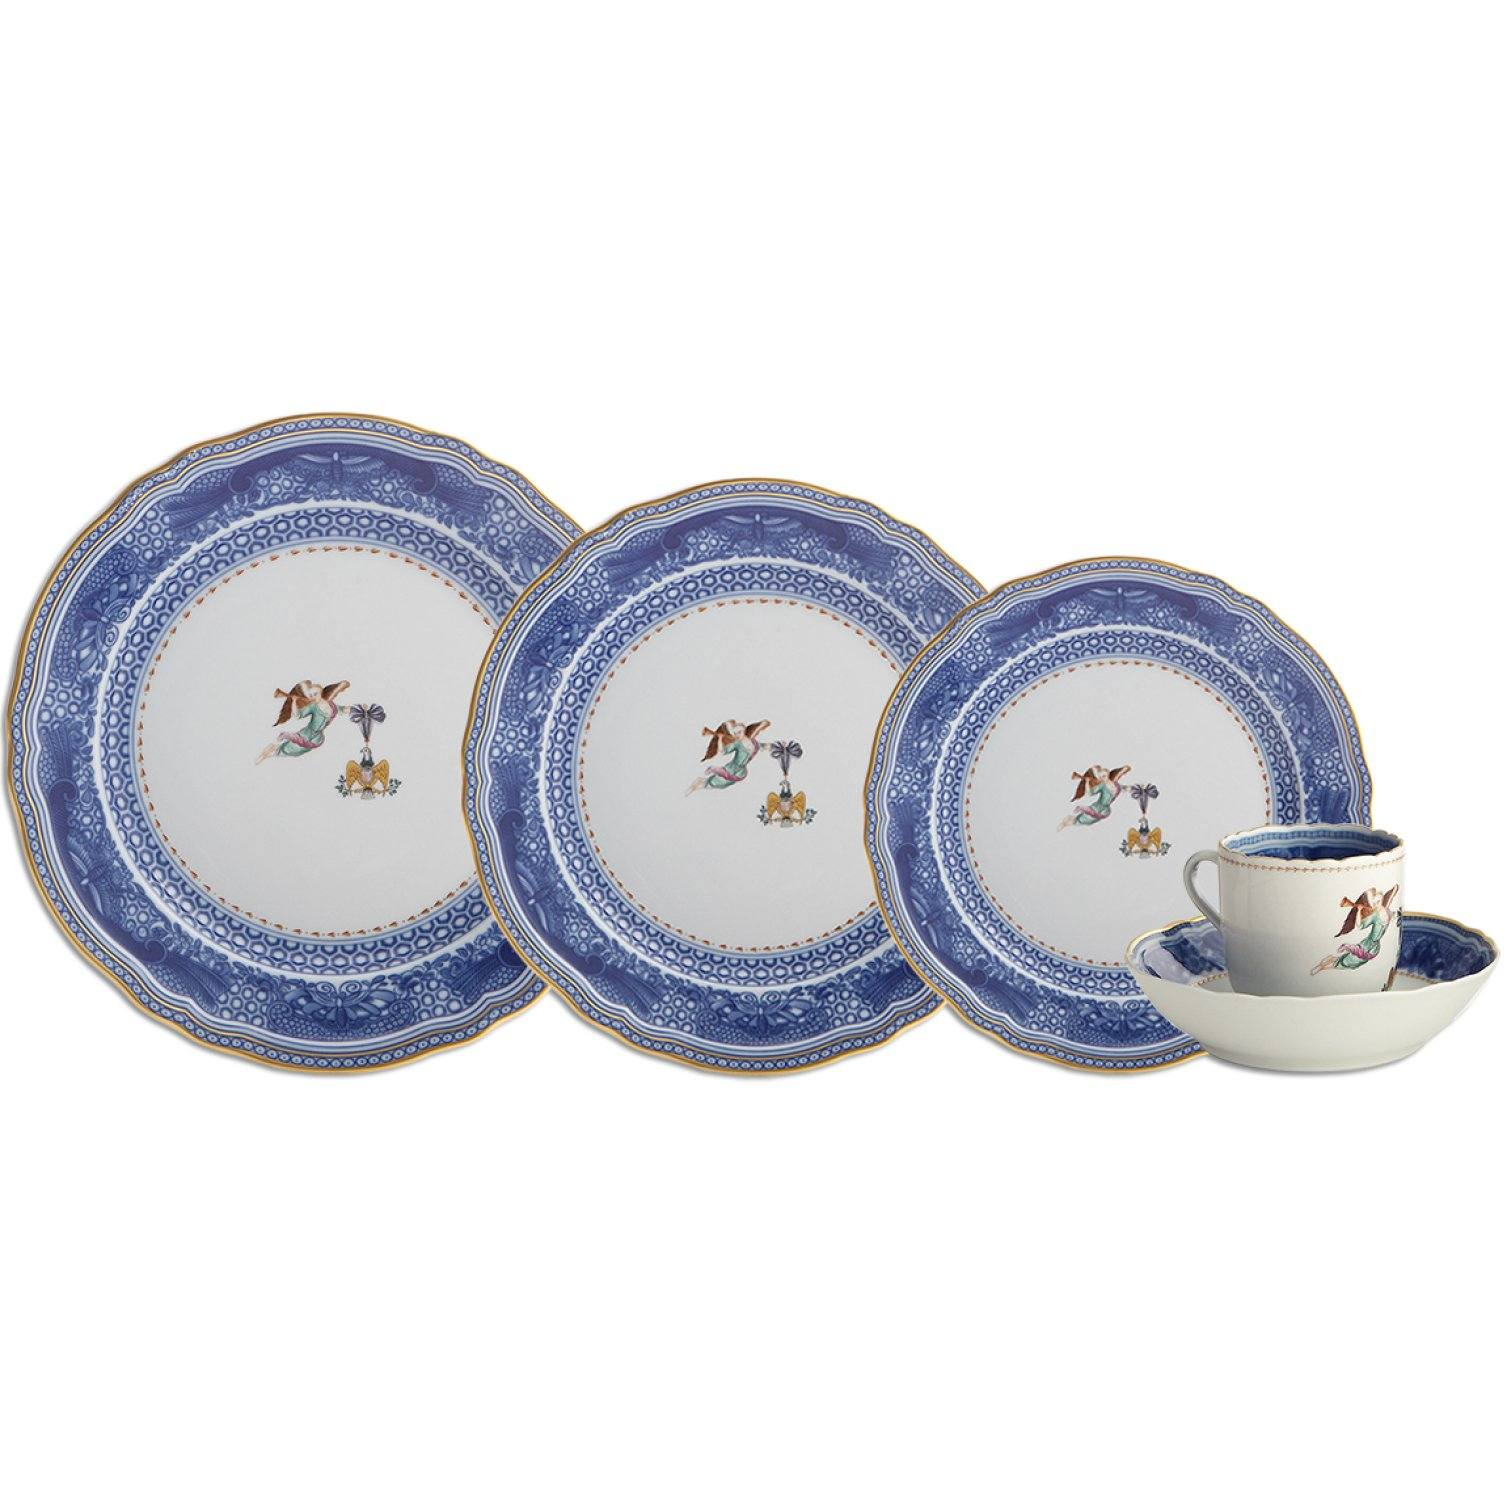 Society of Cincinnati China Collection by Mottahedeh from $100.00